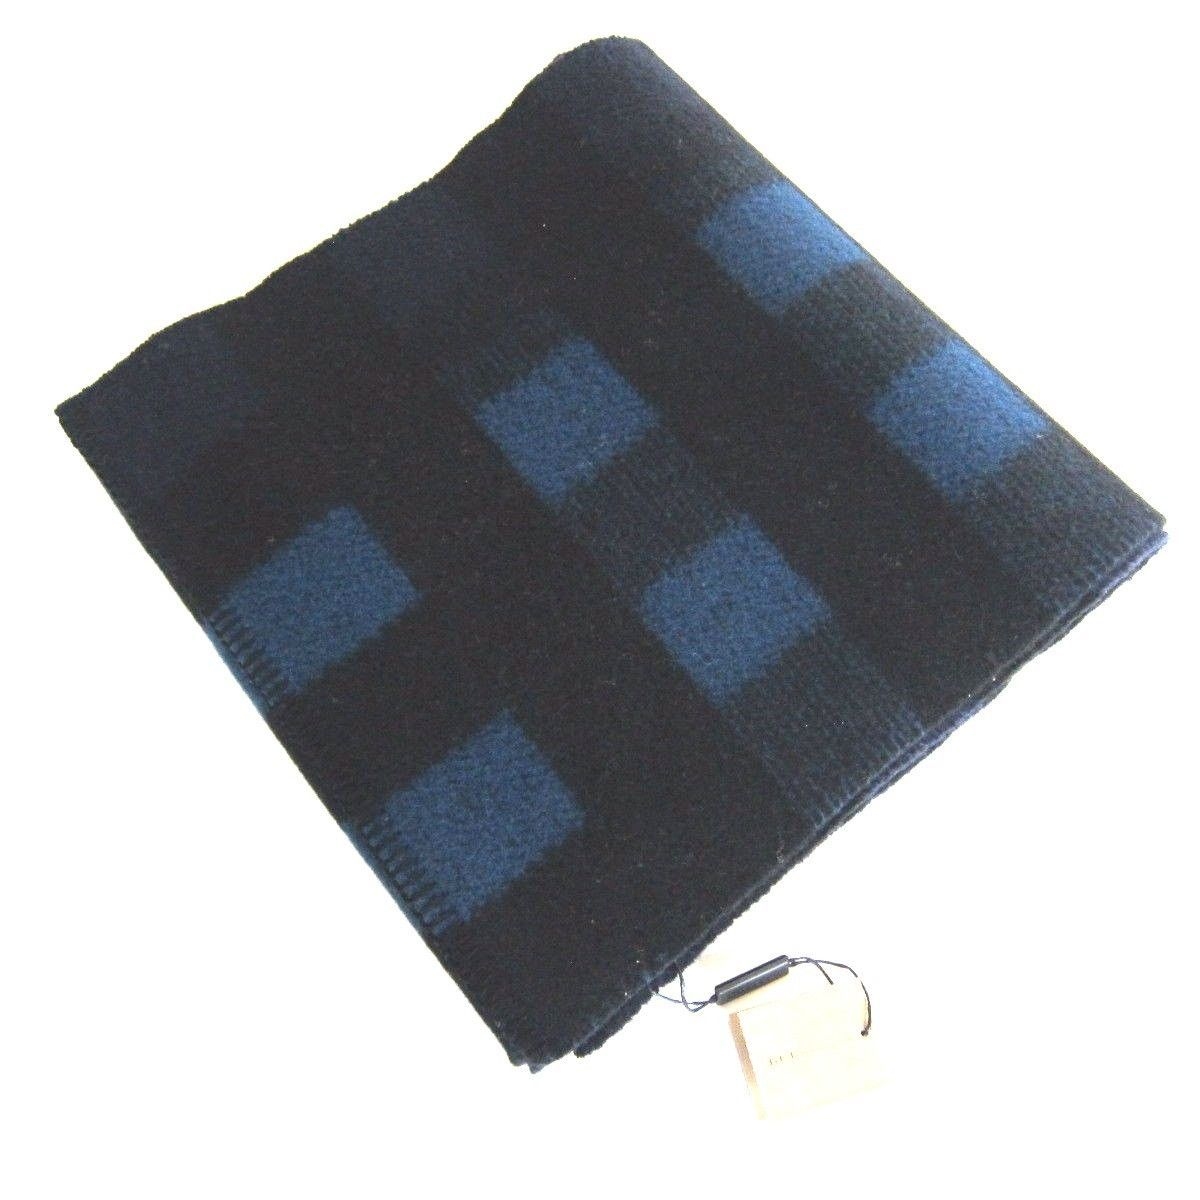 J-727141 New Burberry Plaid Blue Black Blanket Scarf 79 x 13""